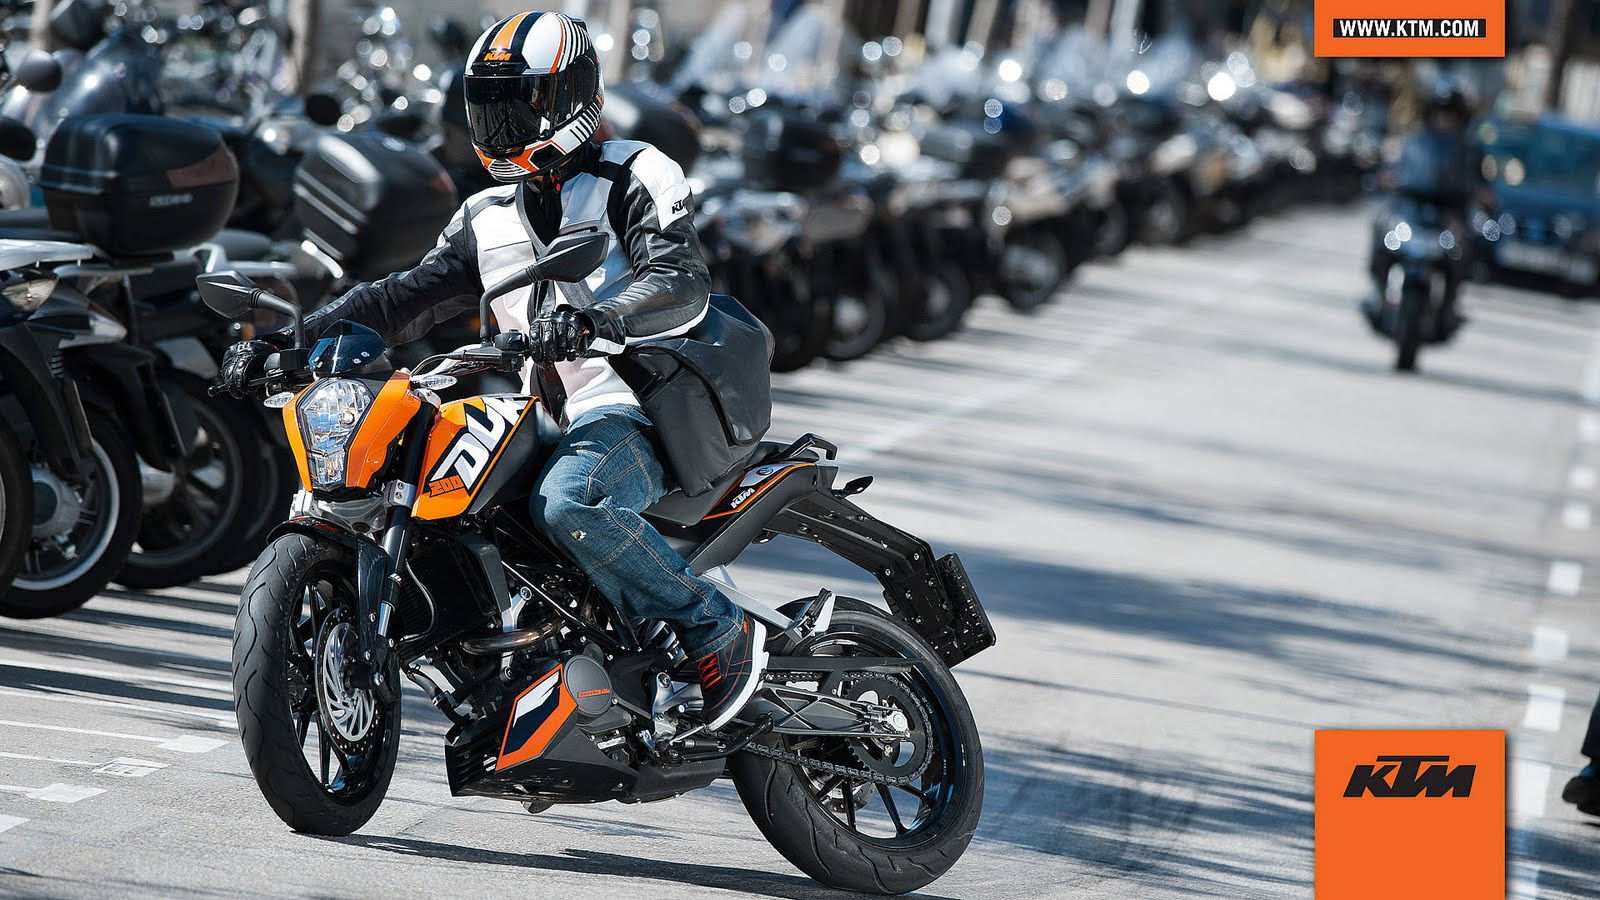 Ktm 200 Duke Is Quot Ready To Race Quot In India In Just A Few